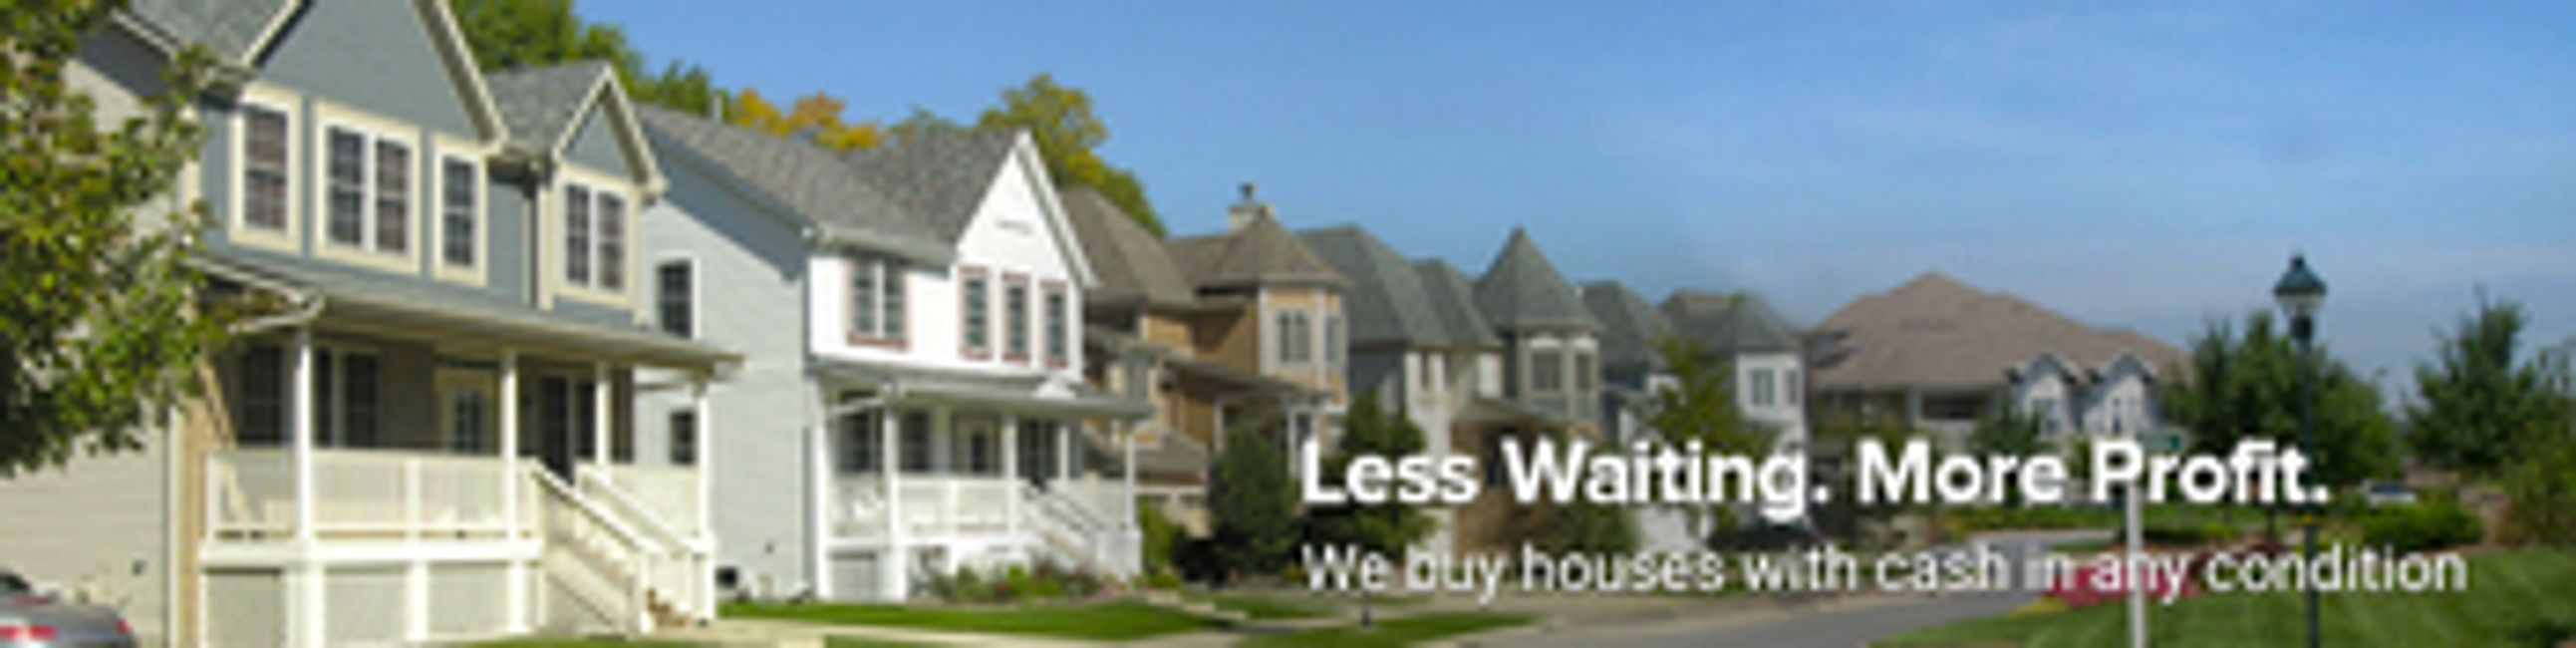 Less Waiting. More Profit. We buy houses with cash in any condition. Now you sell your house fast